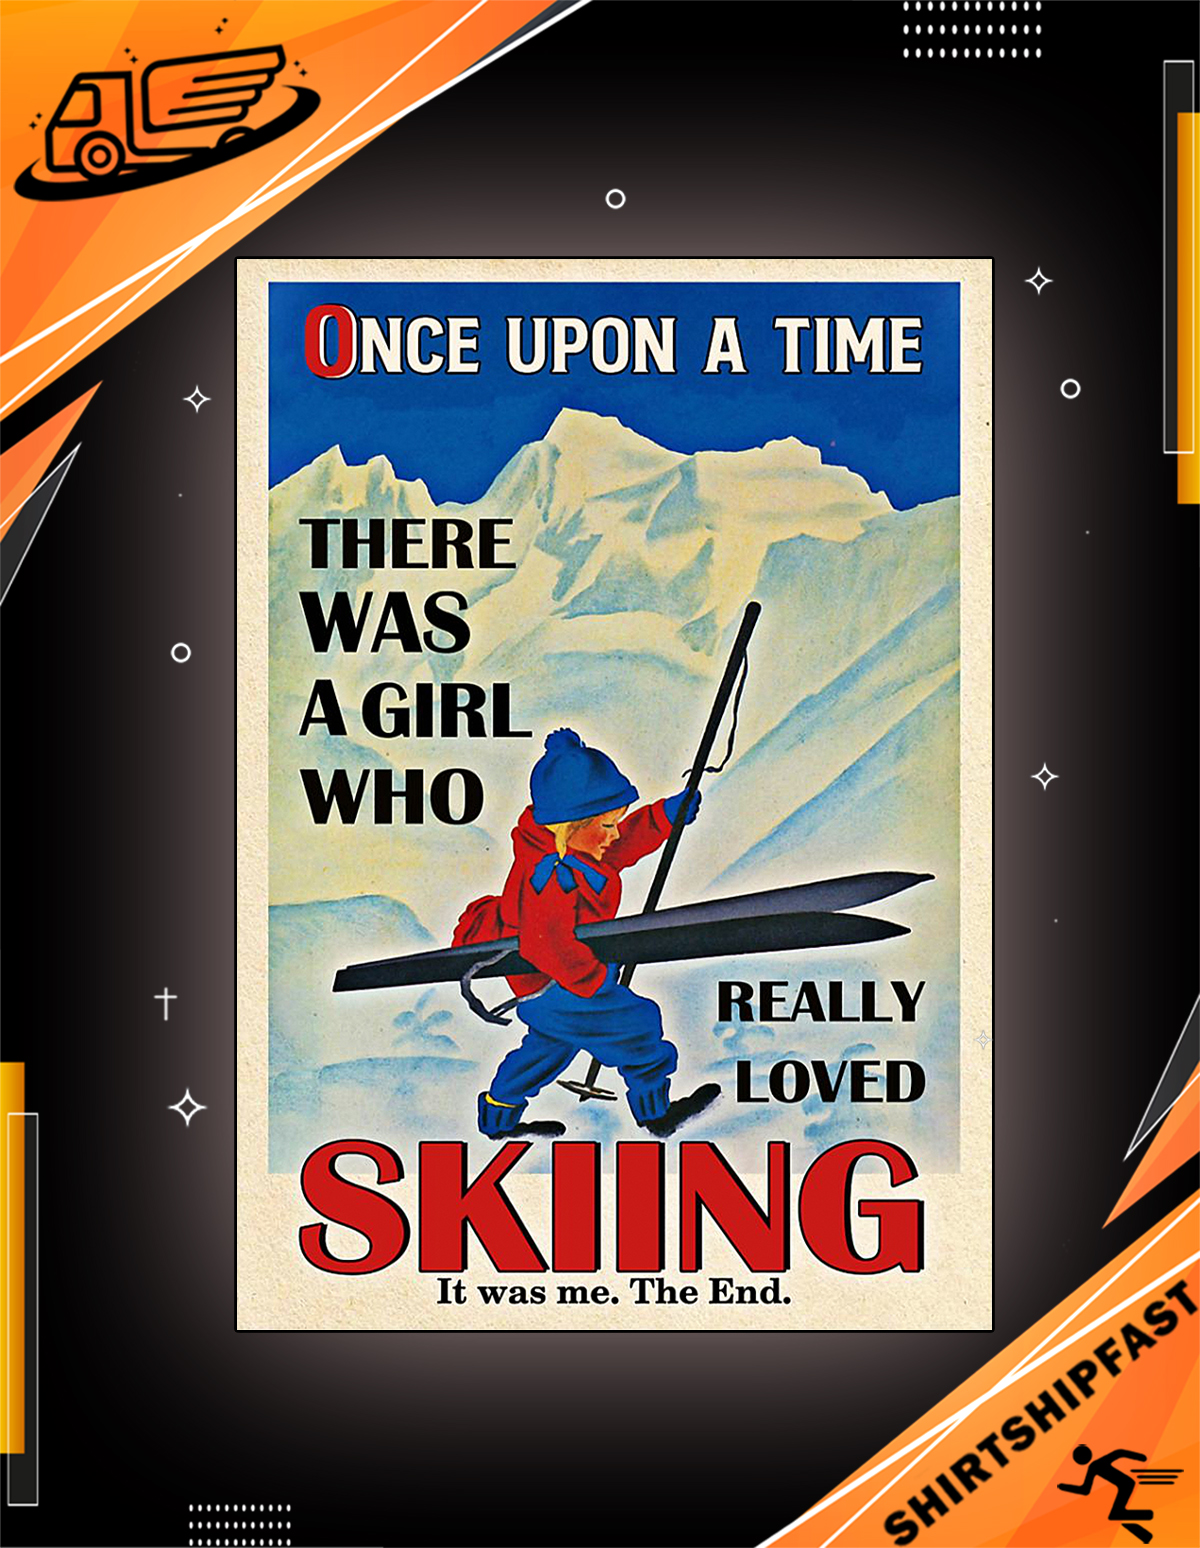 Once upon a time there was a girl who really loved skiing poster and canvas - Picture 2